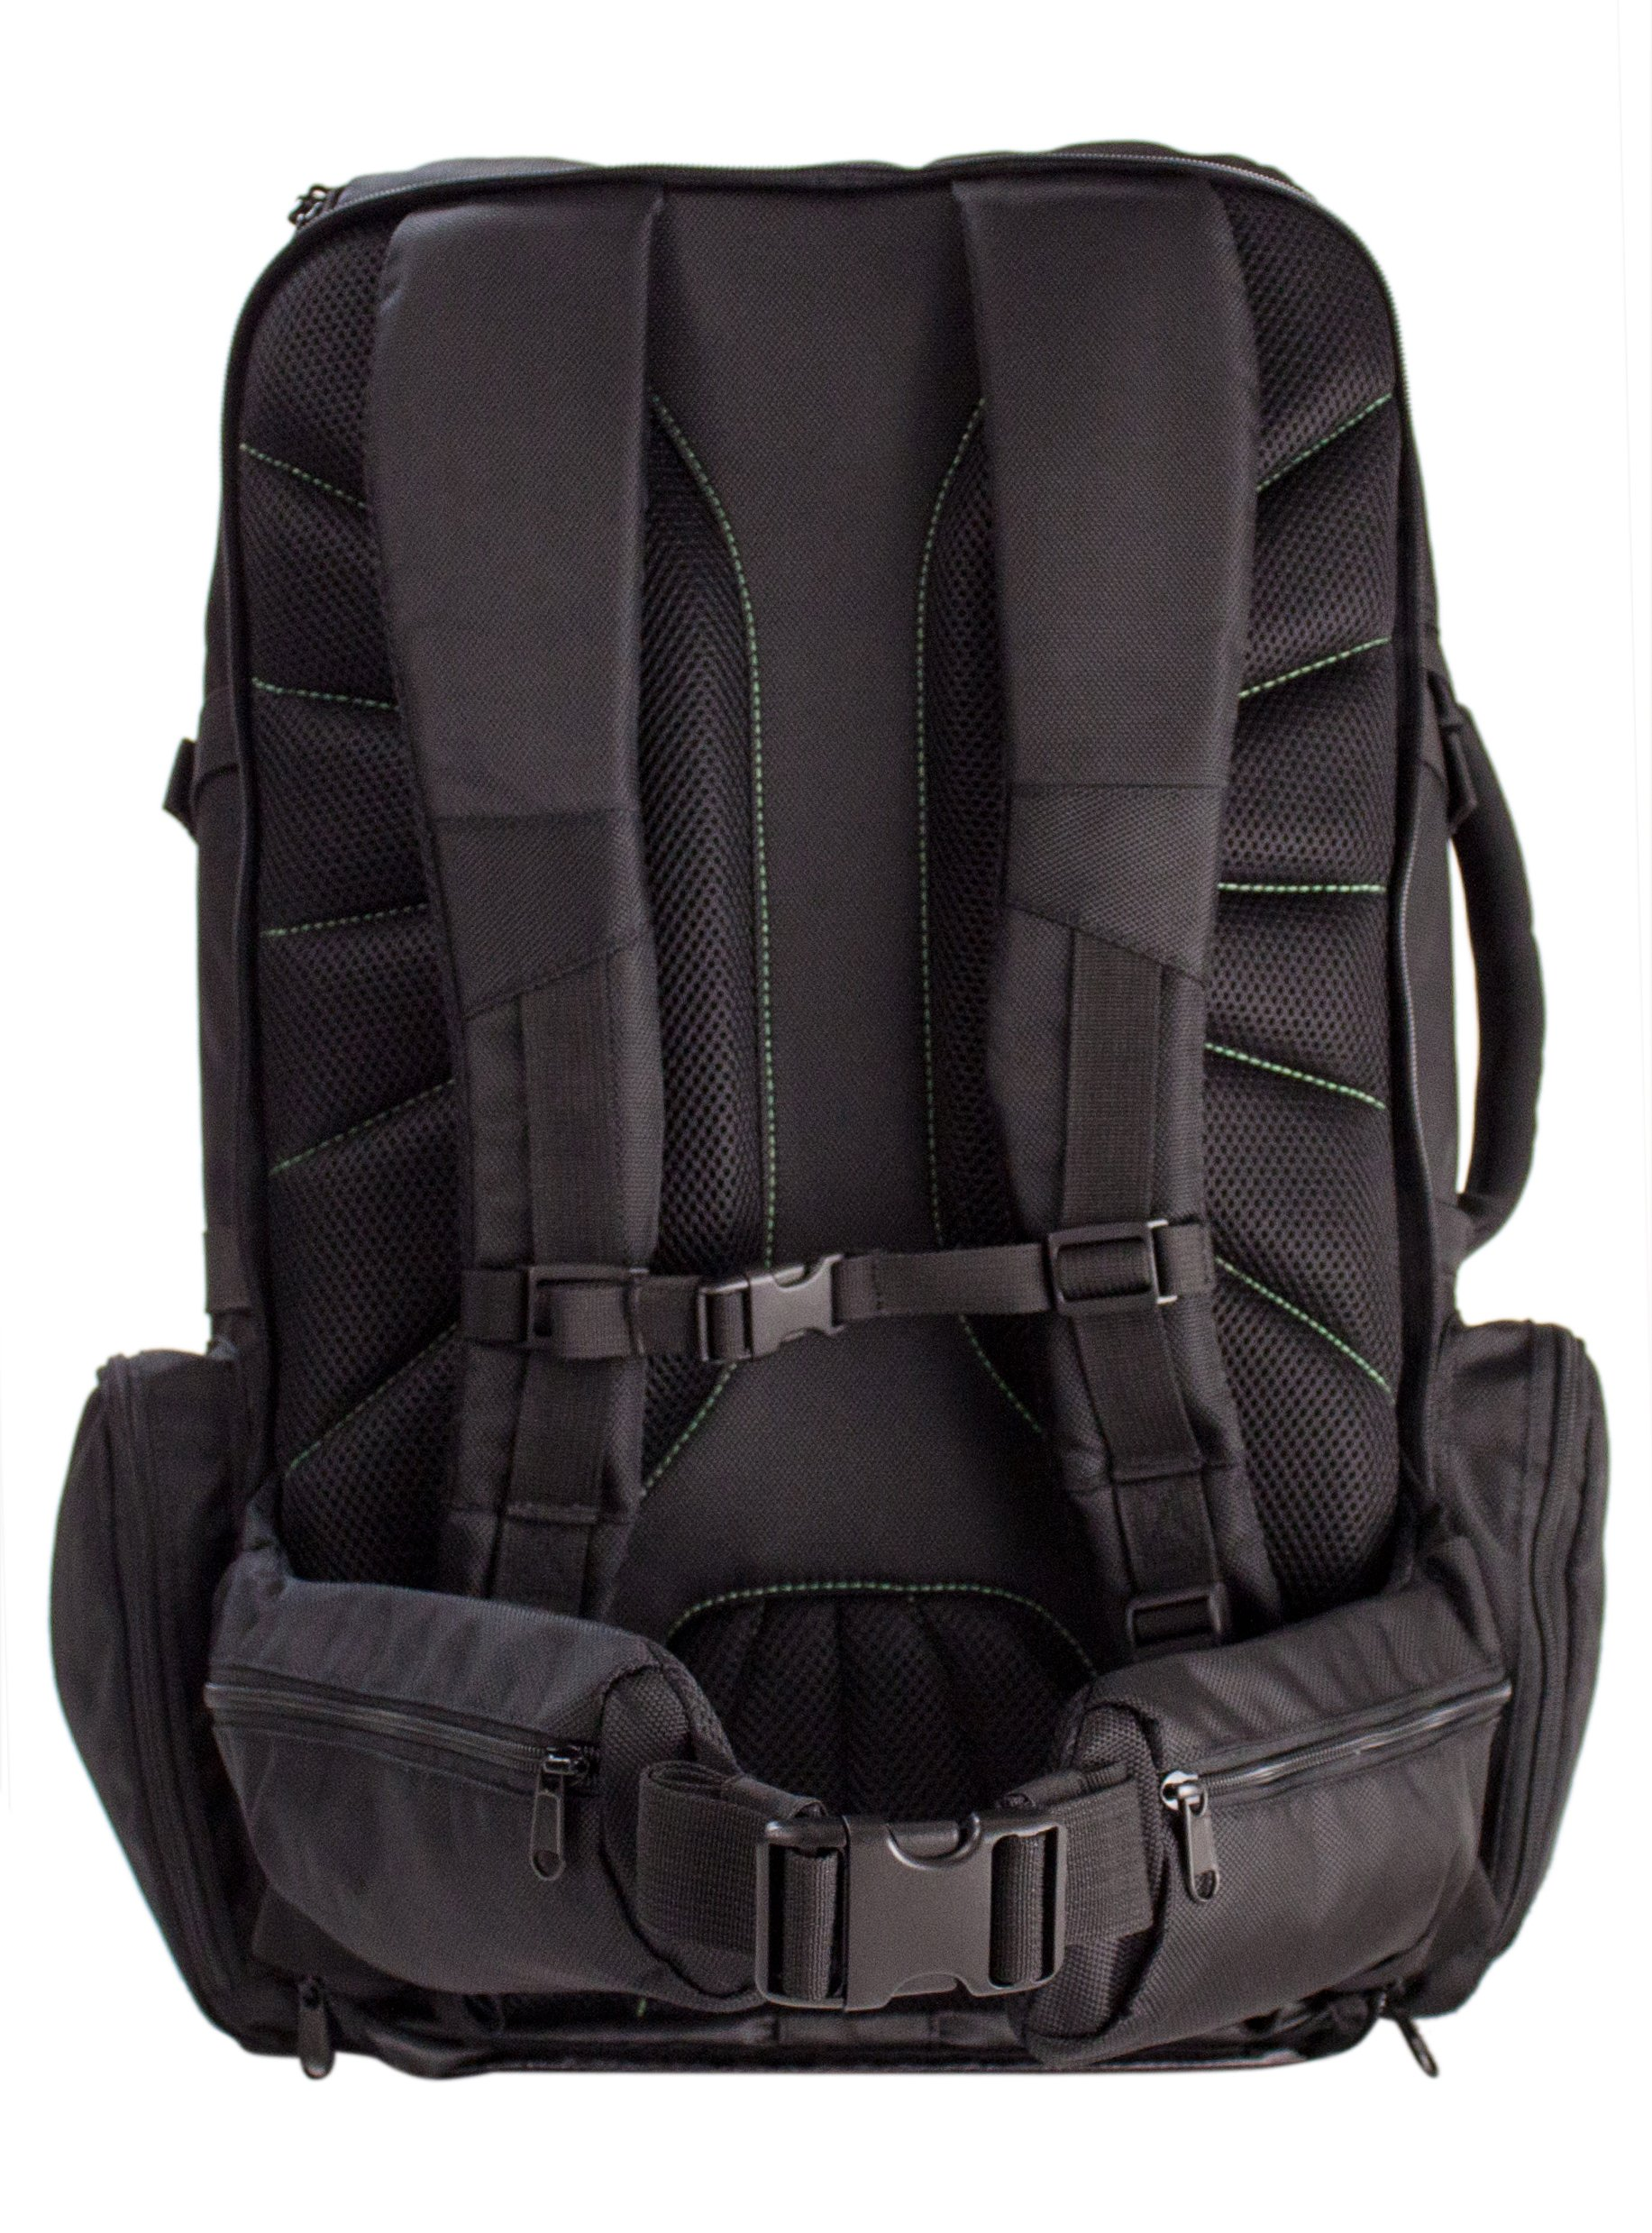 Tortuga Travel Backpack - 44L Maximum-Sized Carry On Travel Backpack by Tortuga (Image #9)